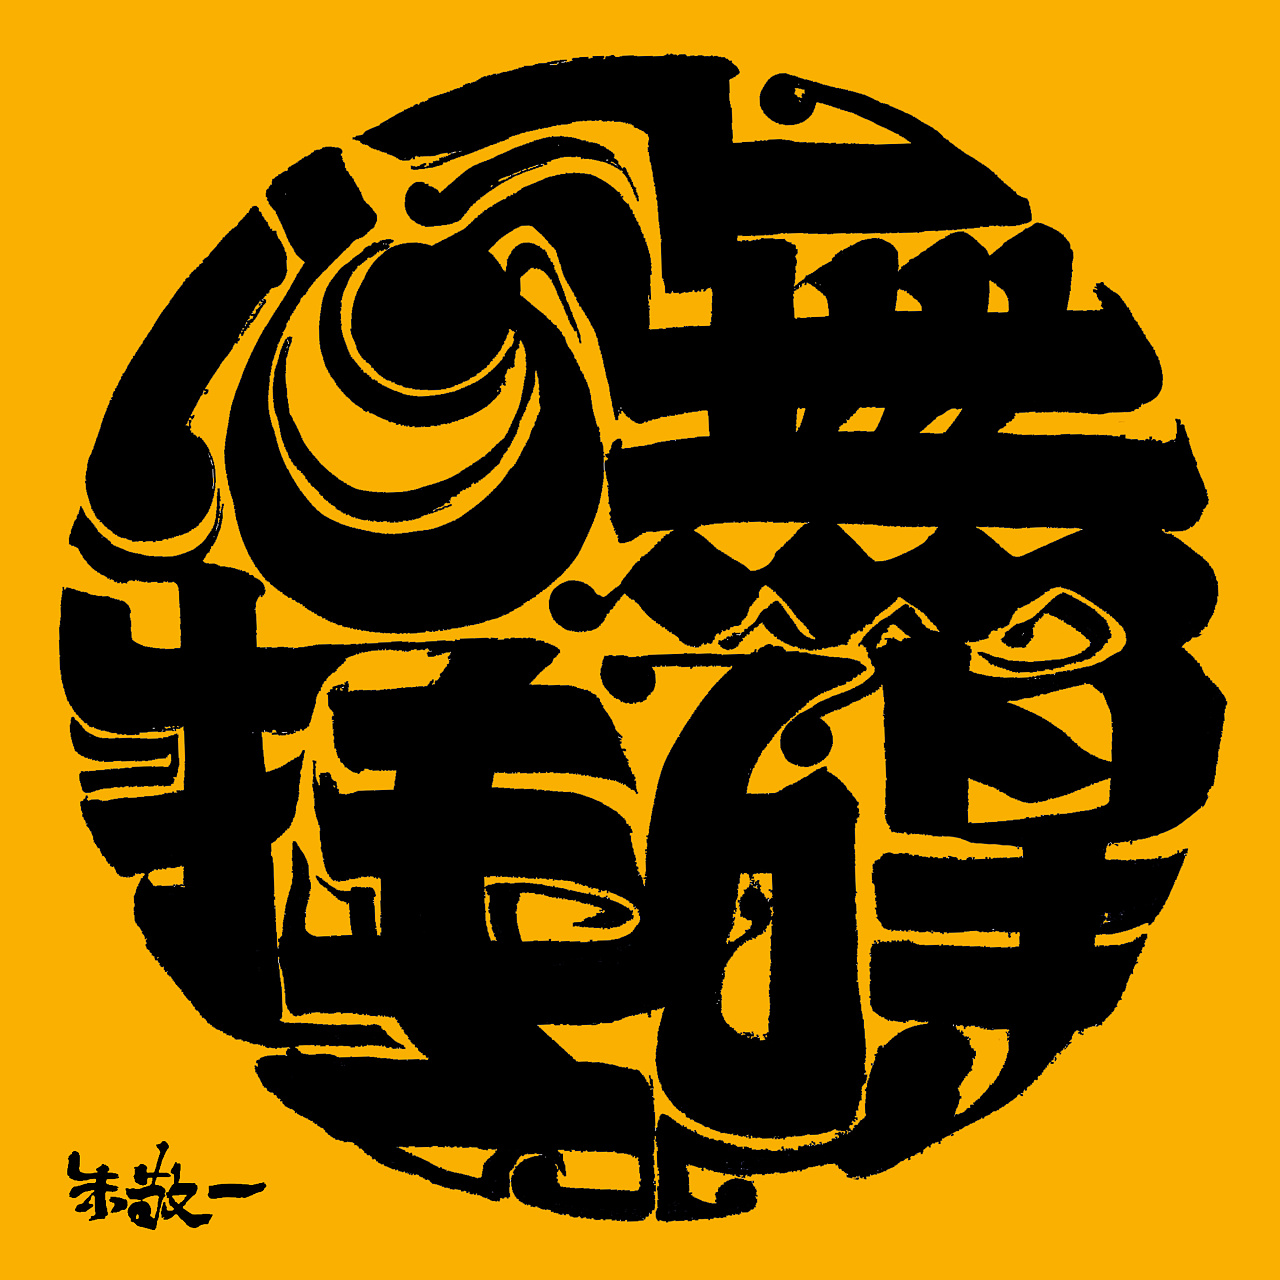 Chinese Creative Font Design-Zhu jingyi brushes the round characters of calligraphy with a board.